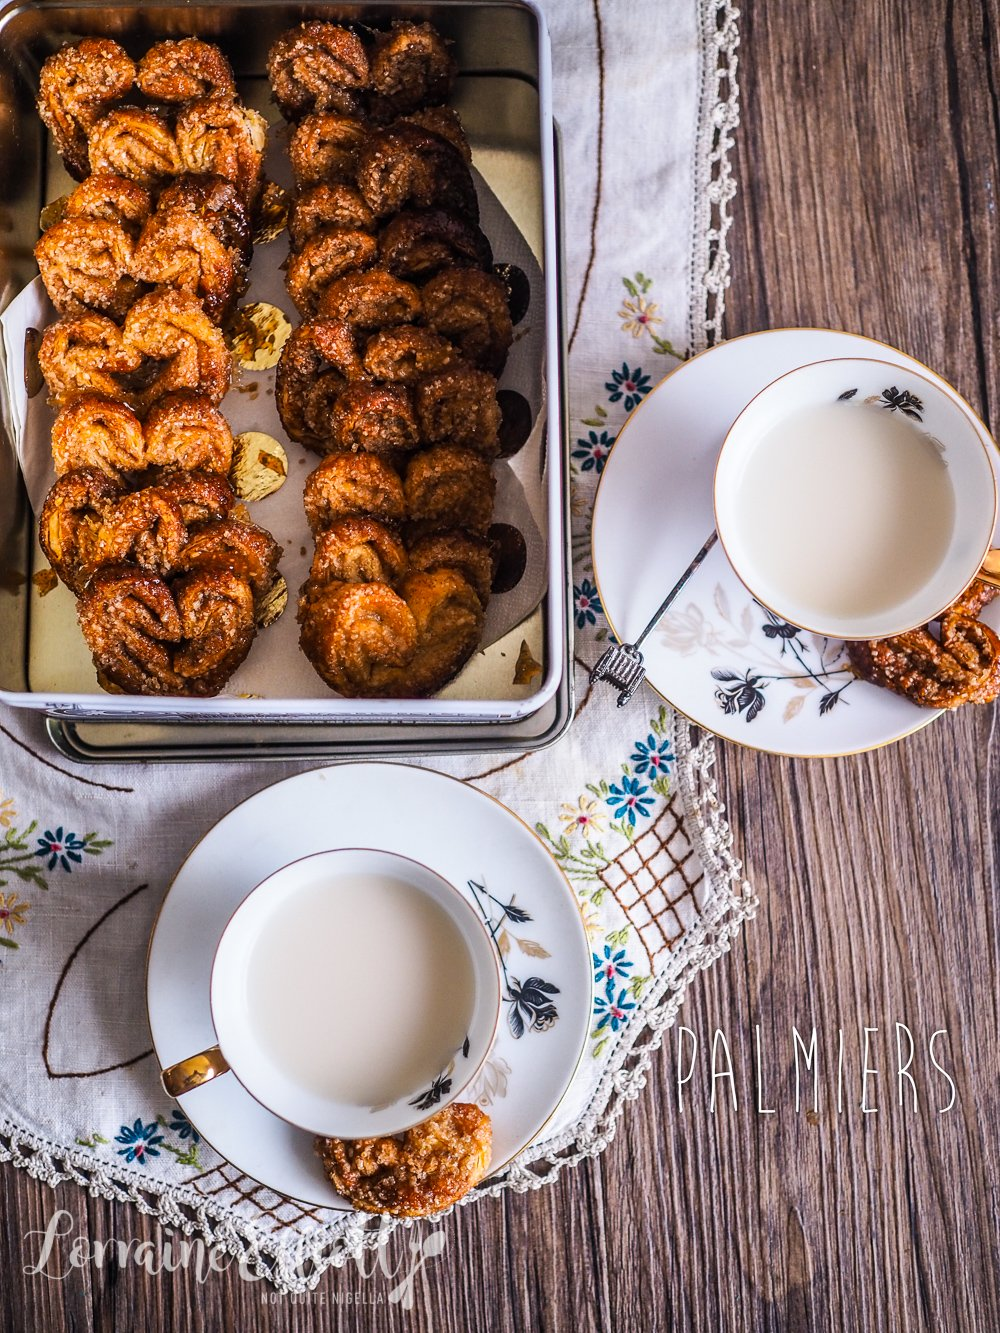 Best Palmiers recipe